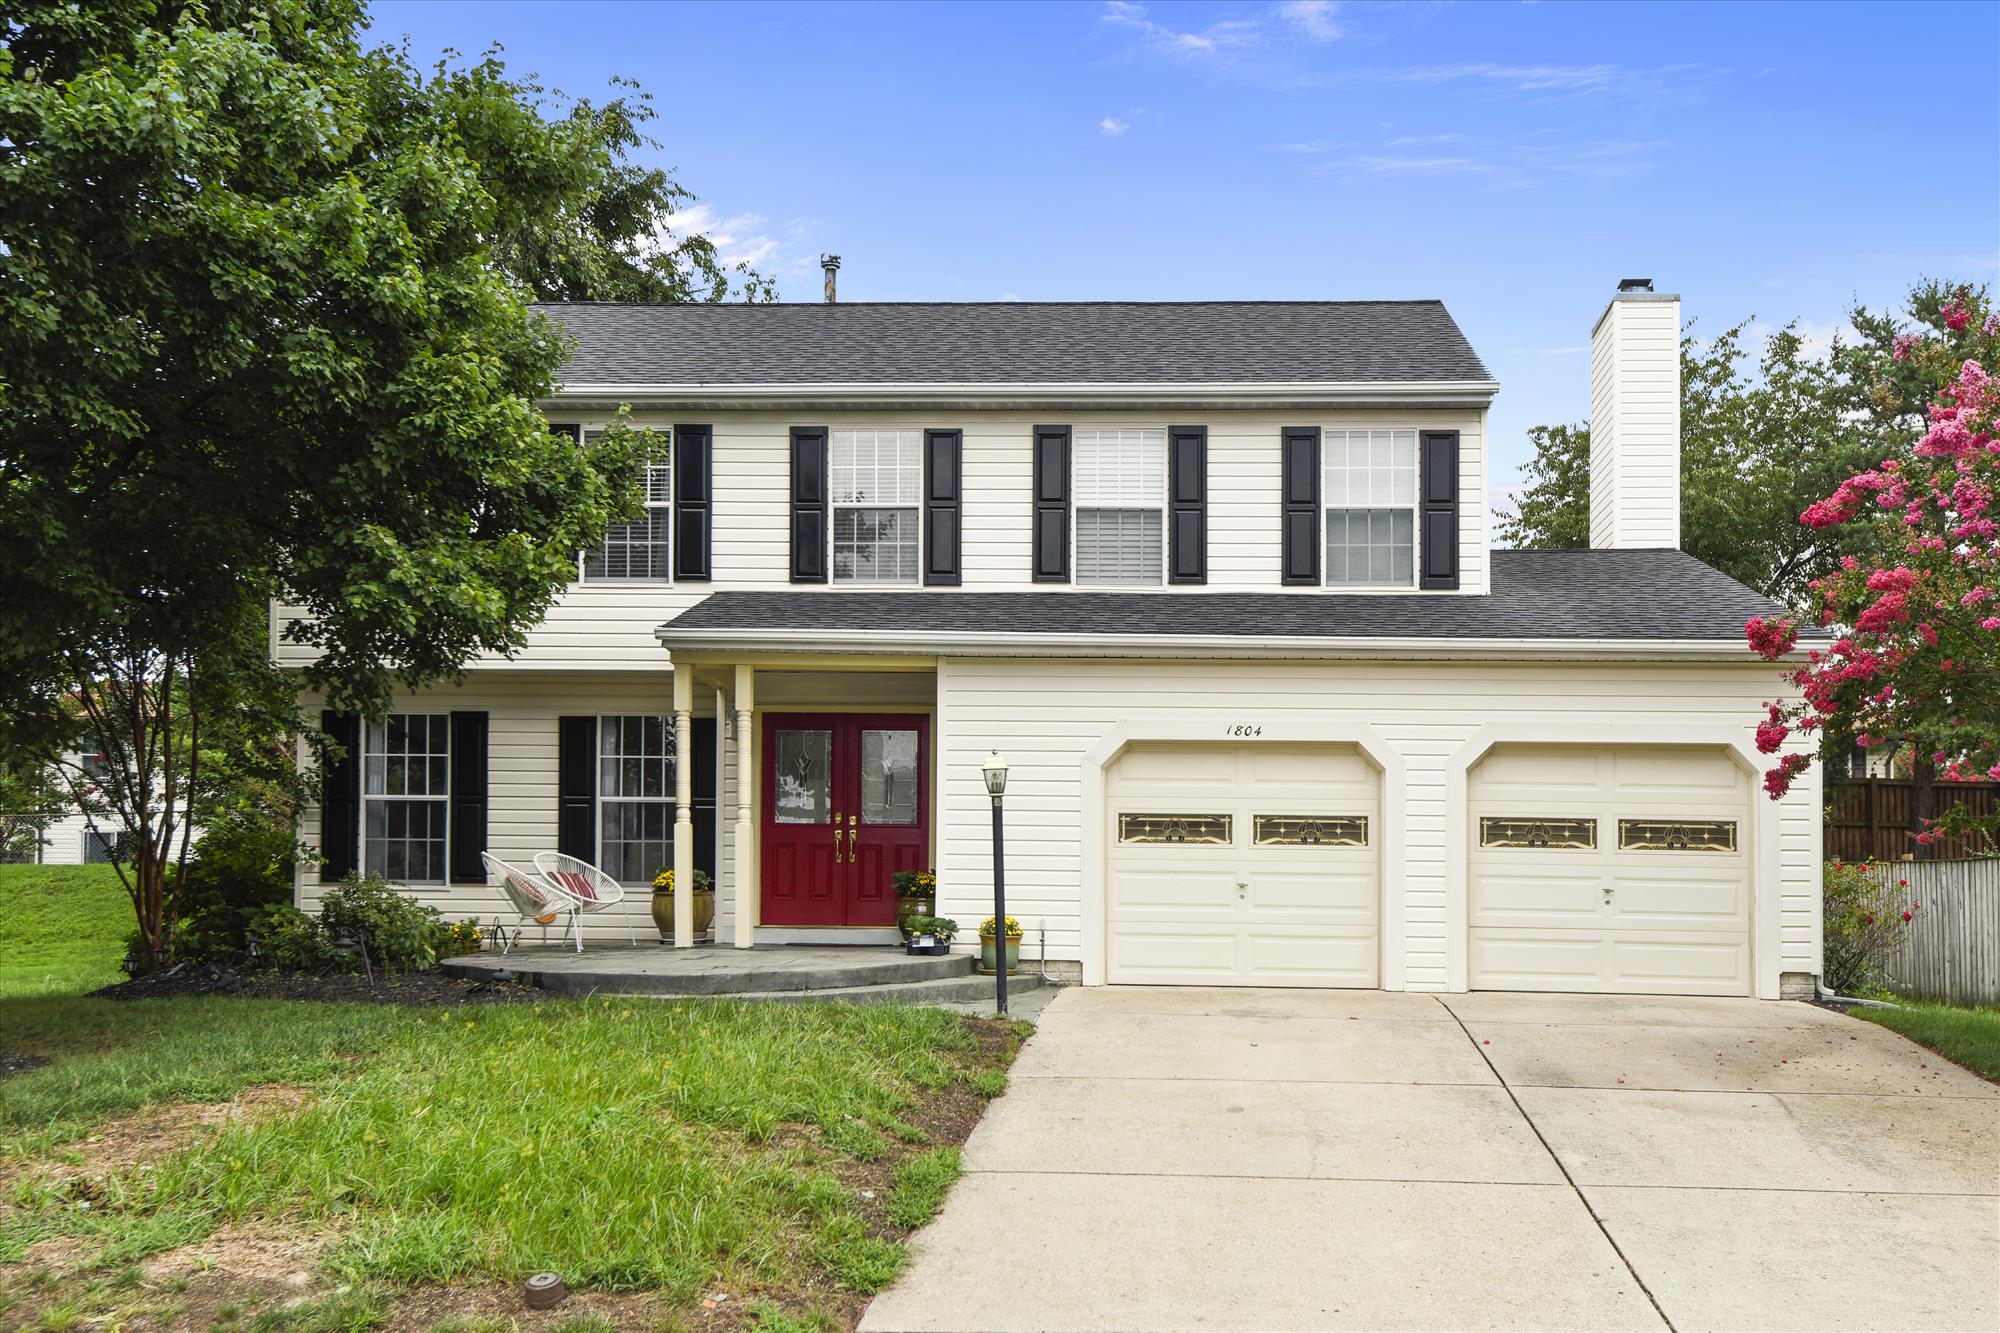 Home for sale in Severn MD